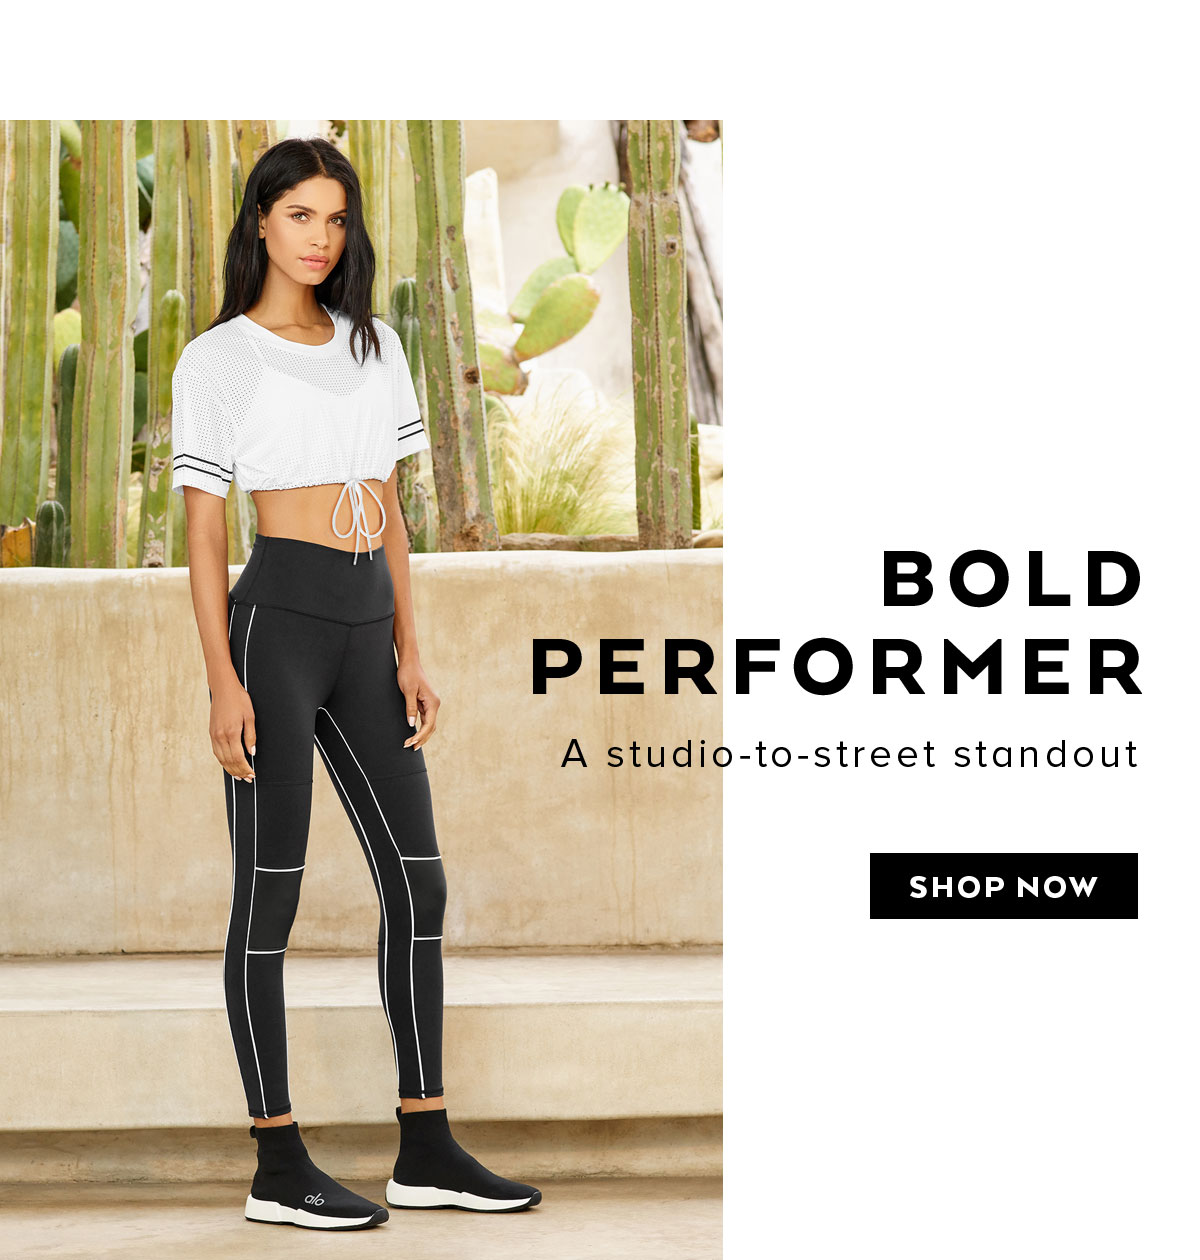 BOLD PERFORMER. A studio-to-street standout. SHOP NOW